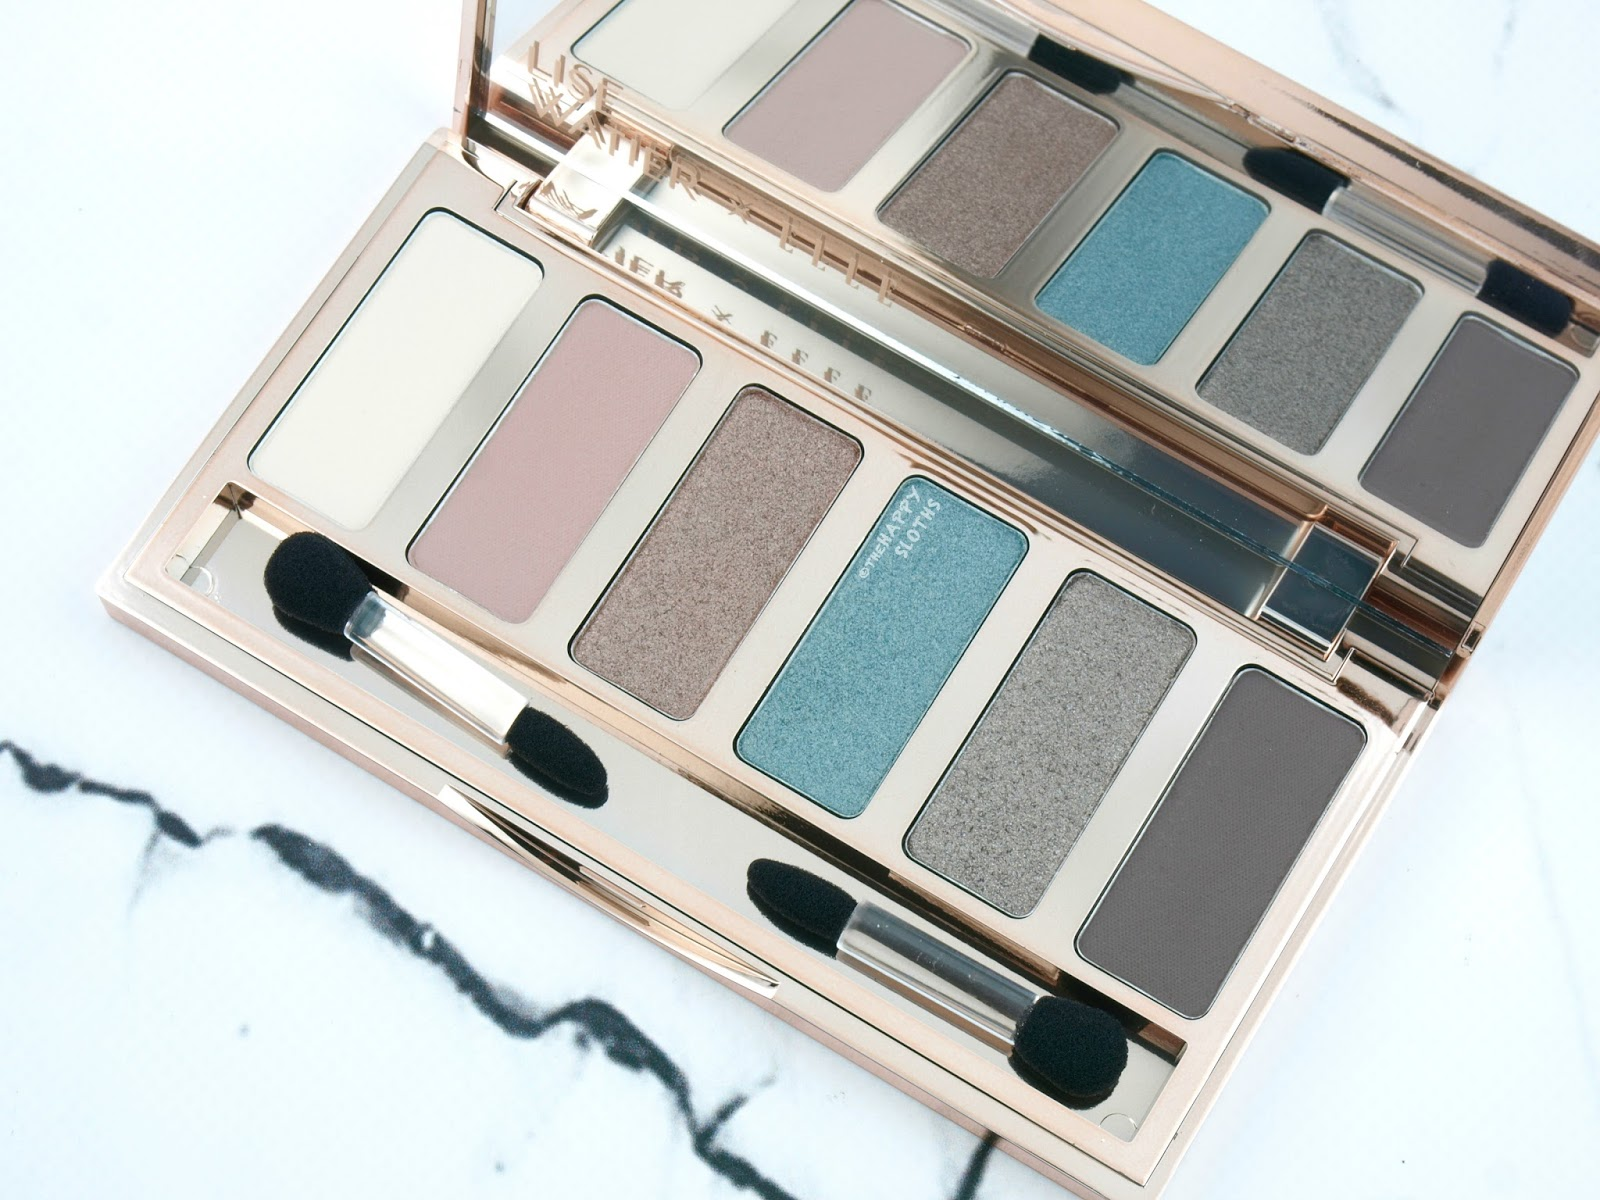 Lise Watier x ELLE Weekender Eyeshadow Palette: Review and Swatches